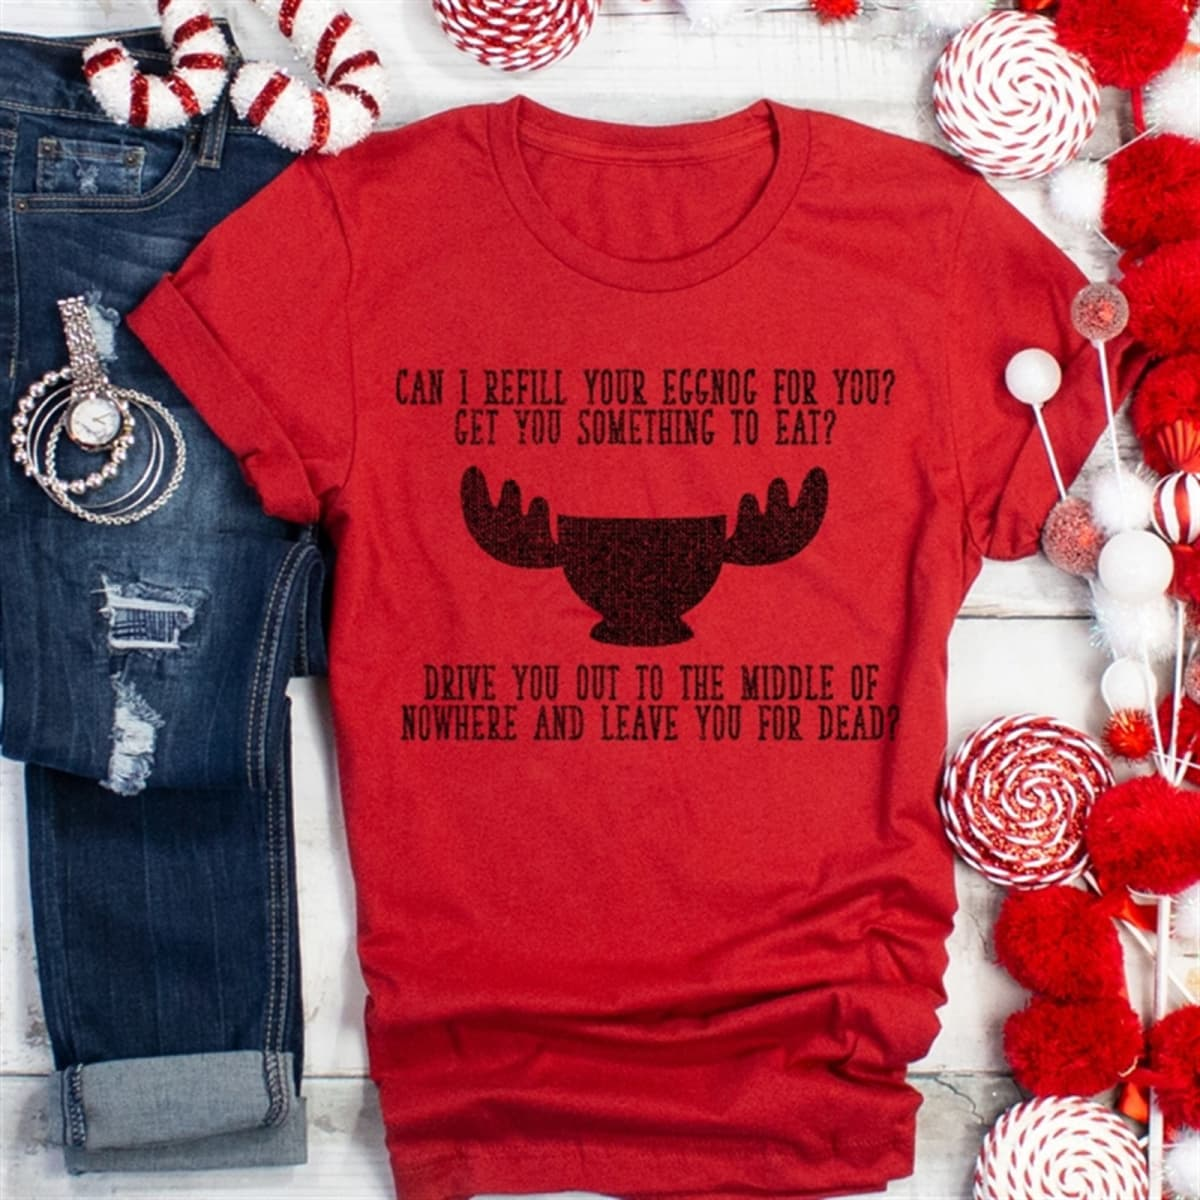 7d3b4397 Funny Family Christmas Tee | Free Shipping | Jane